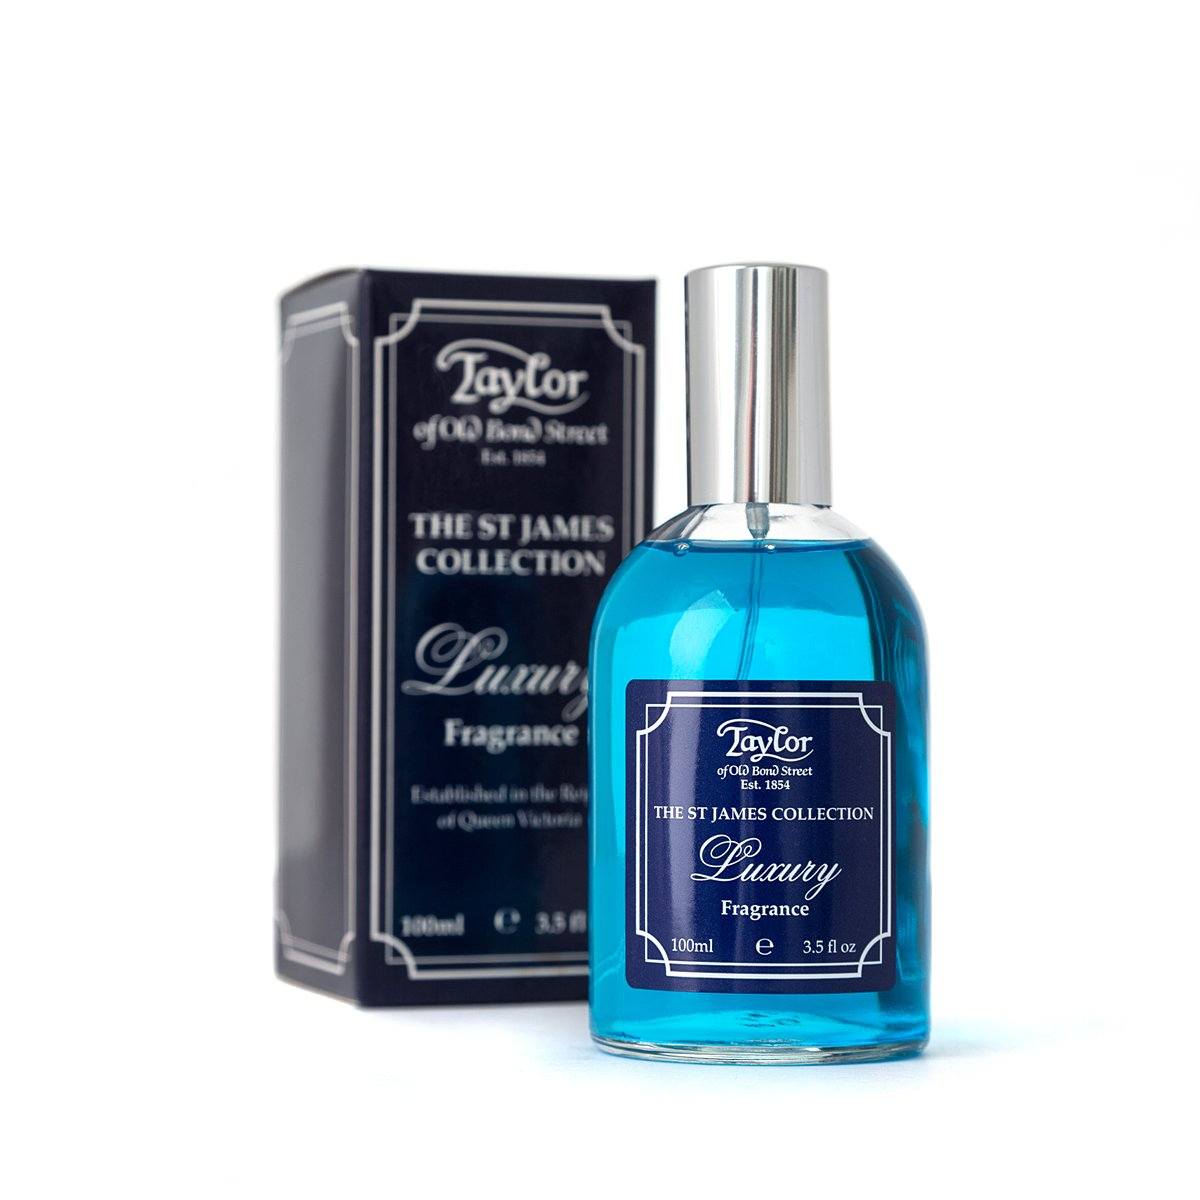 St. James Collection fragrance 100ml